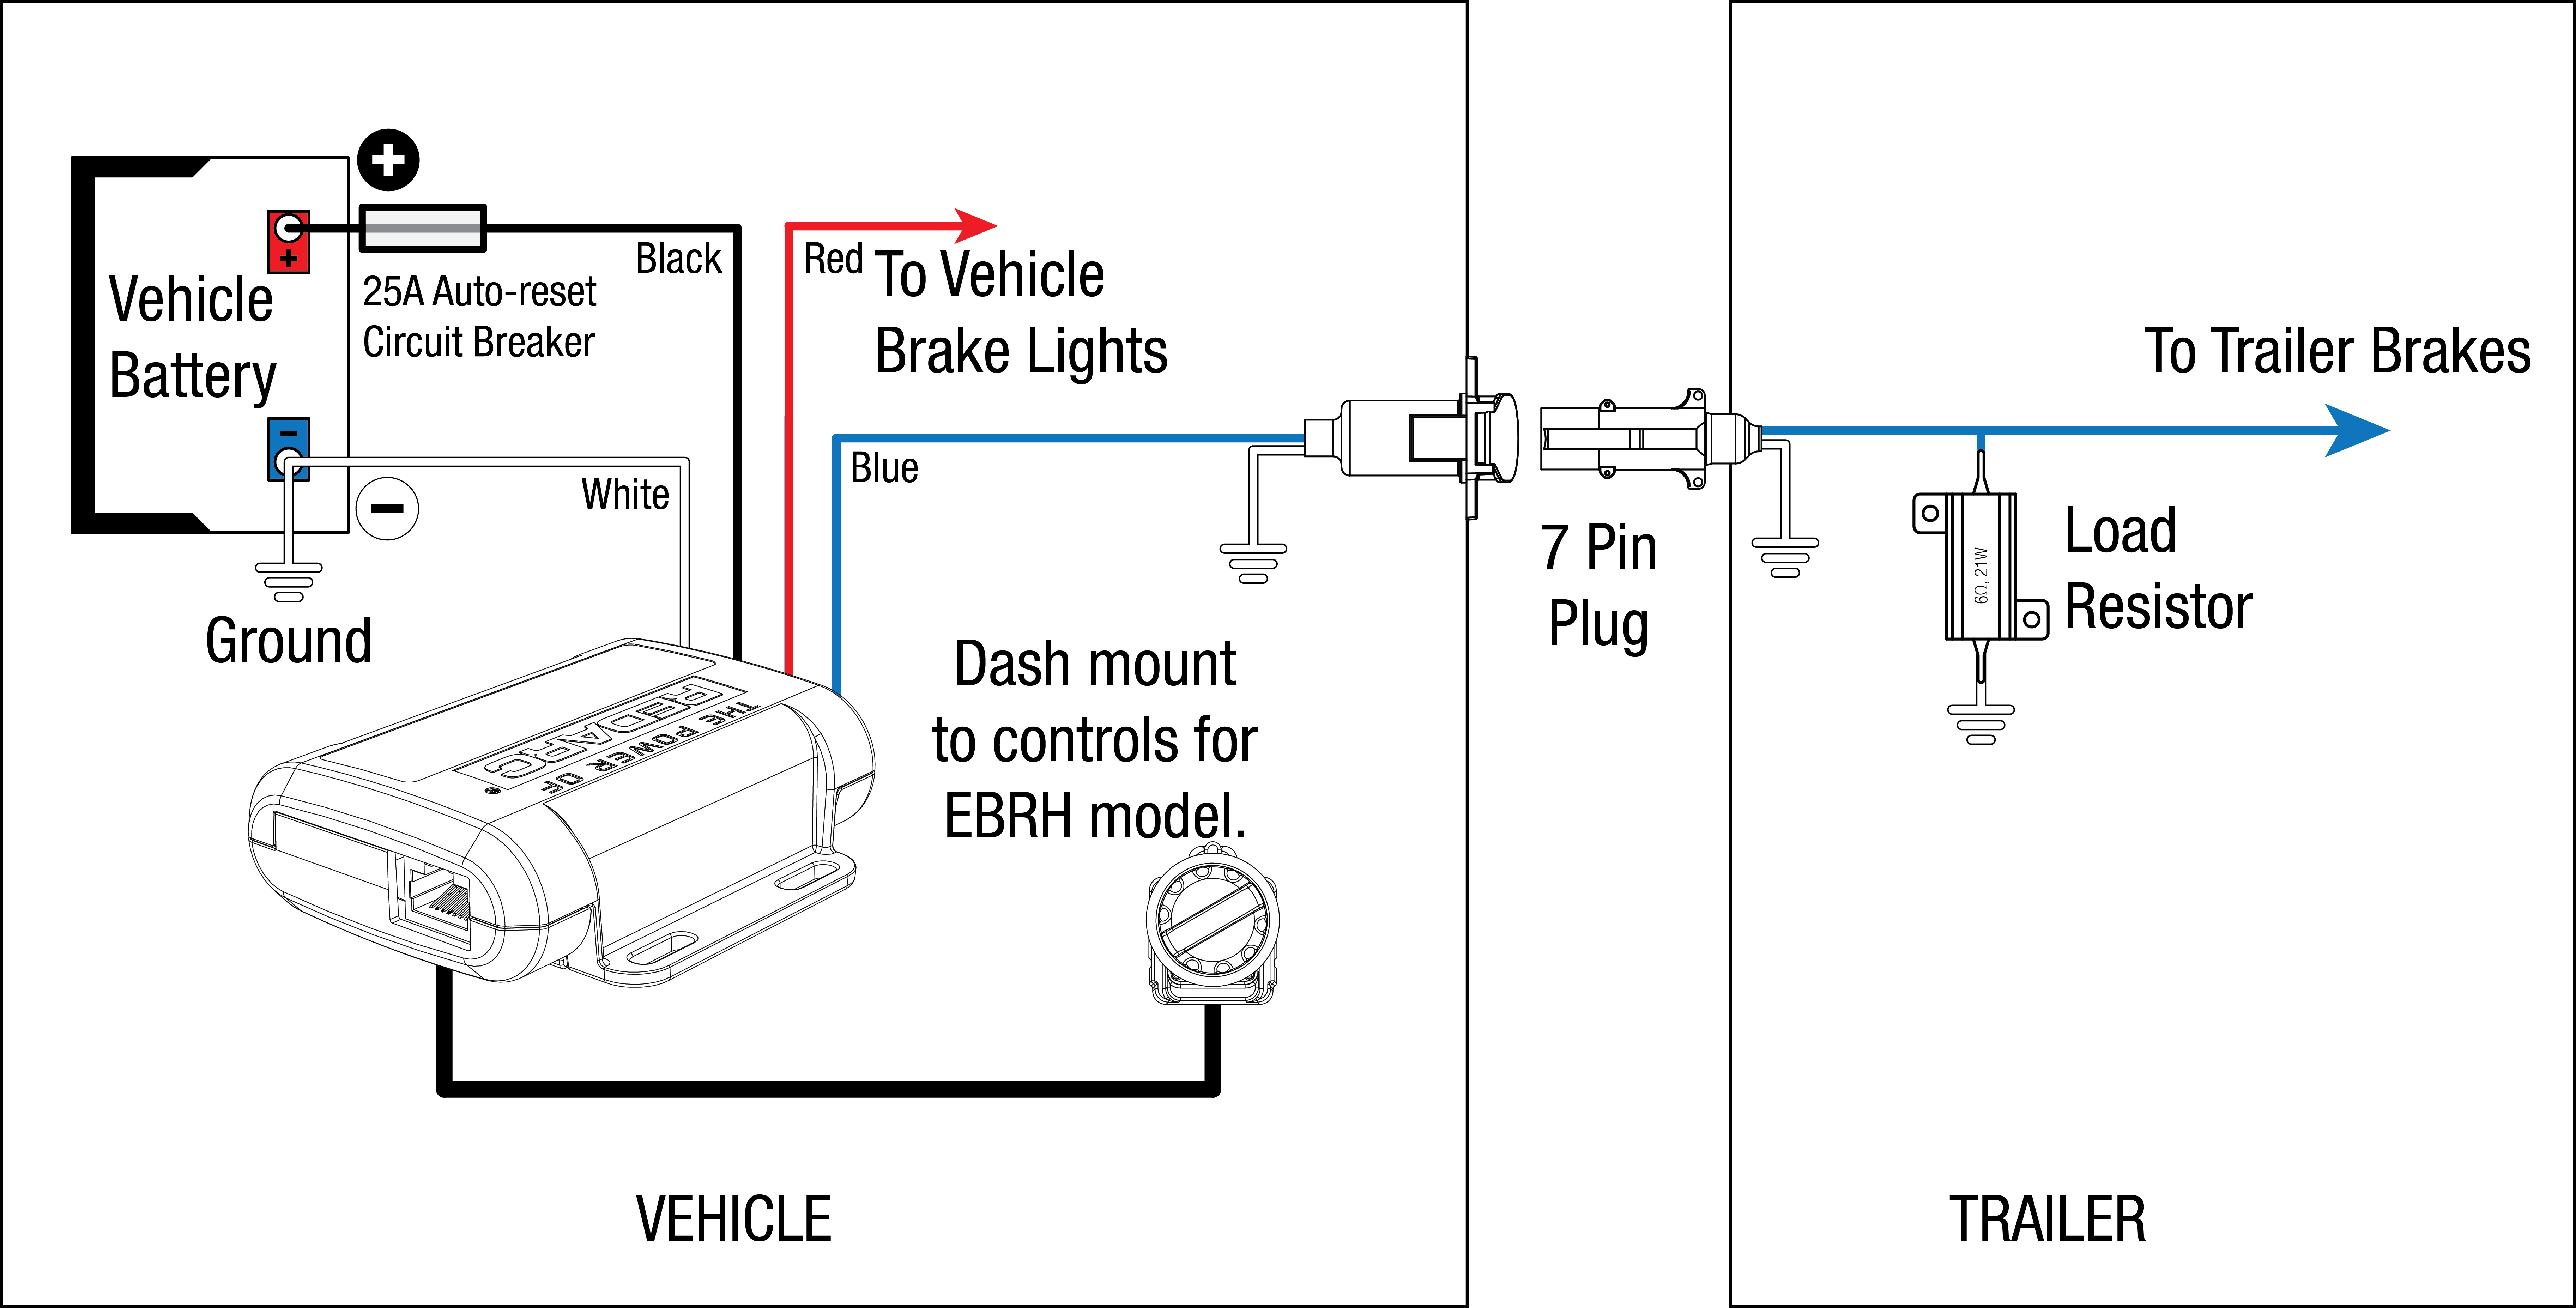 Tow-Pro Electric/hydraulic Braking Systems | Redarc Electronics - Trailer Wiring With Electric Brakes Diagram